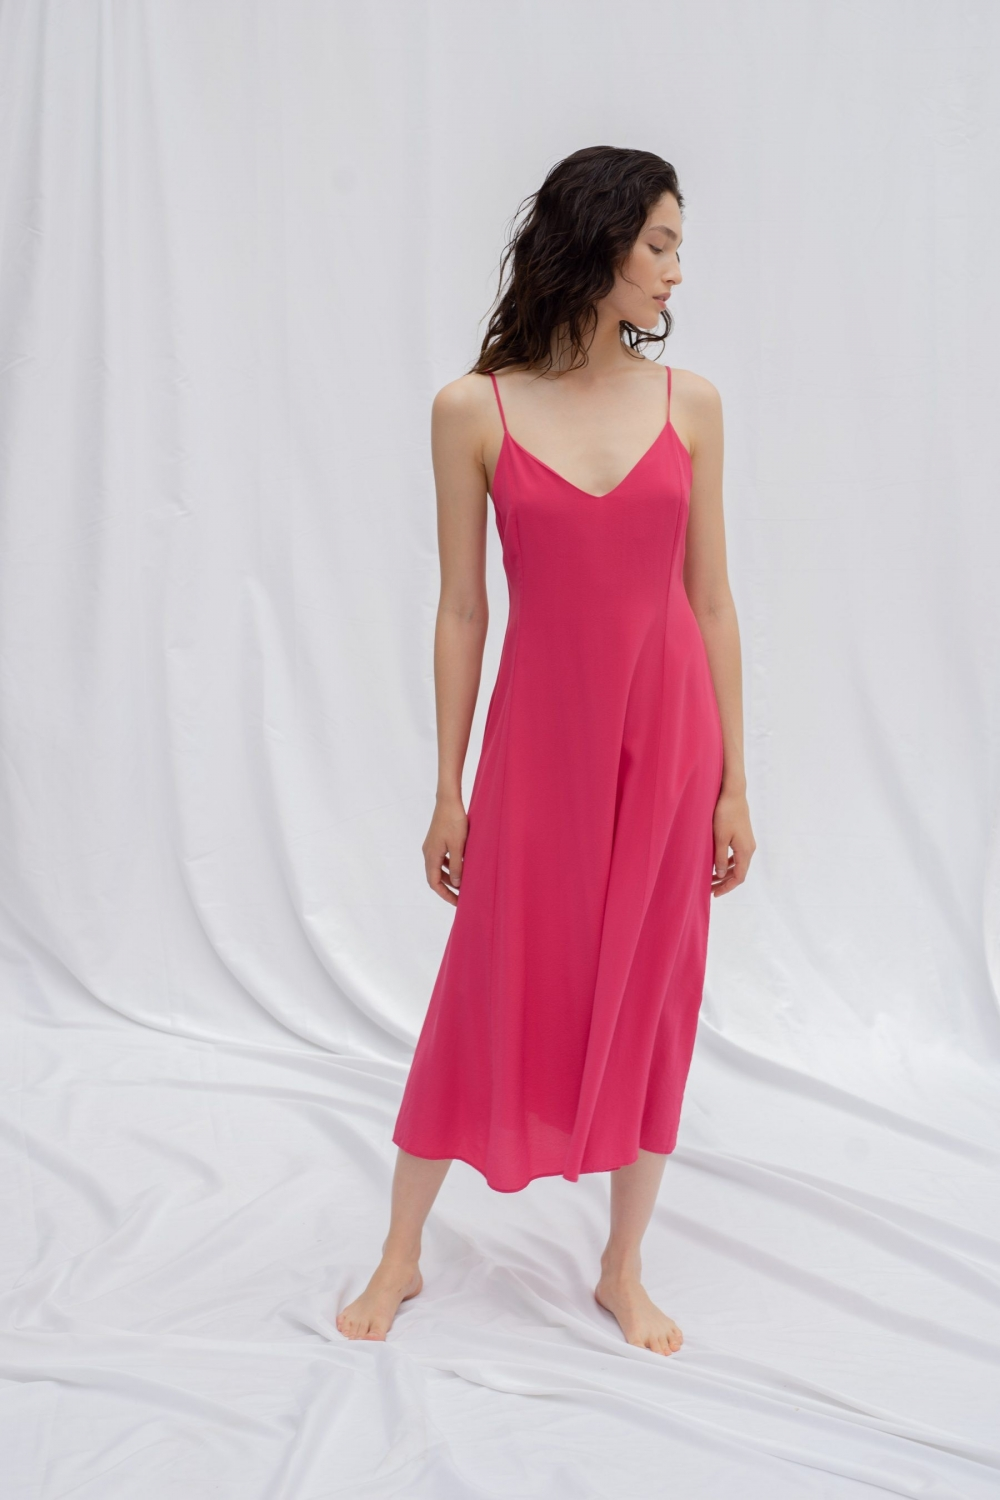 ISABELLA DRESS IN FUCHSIA